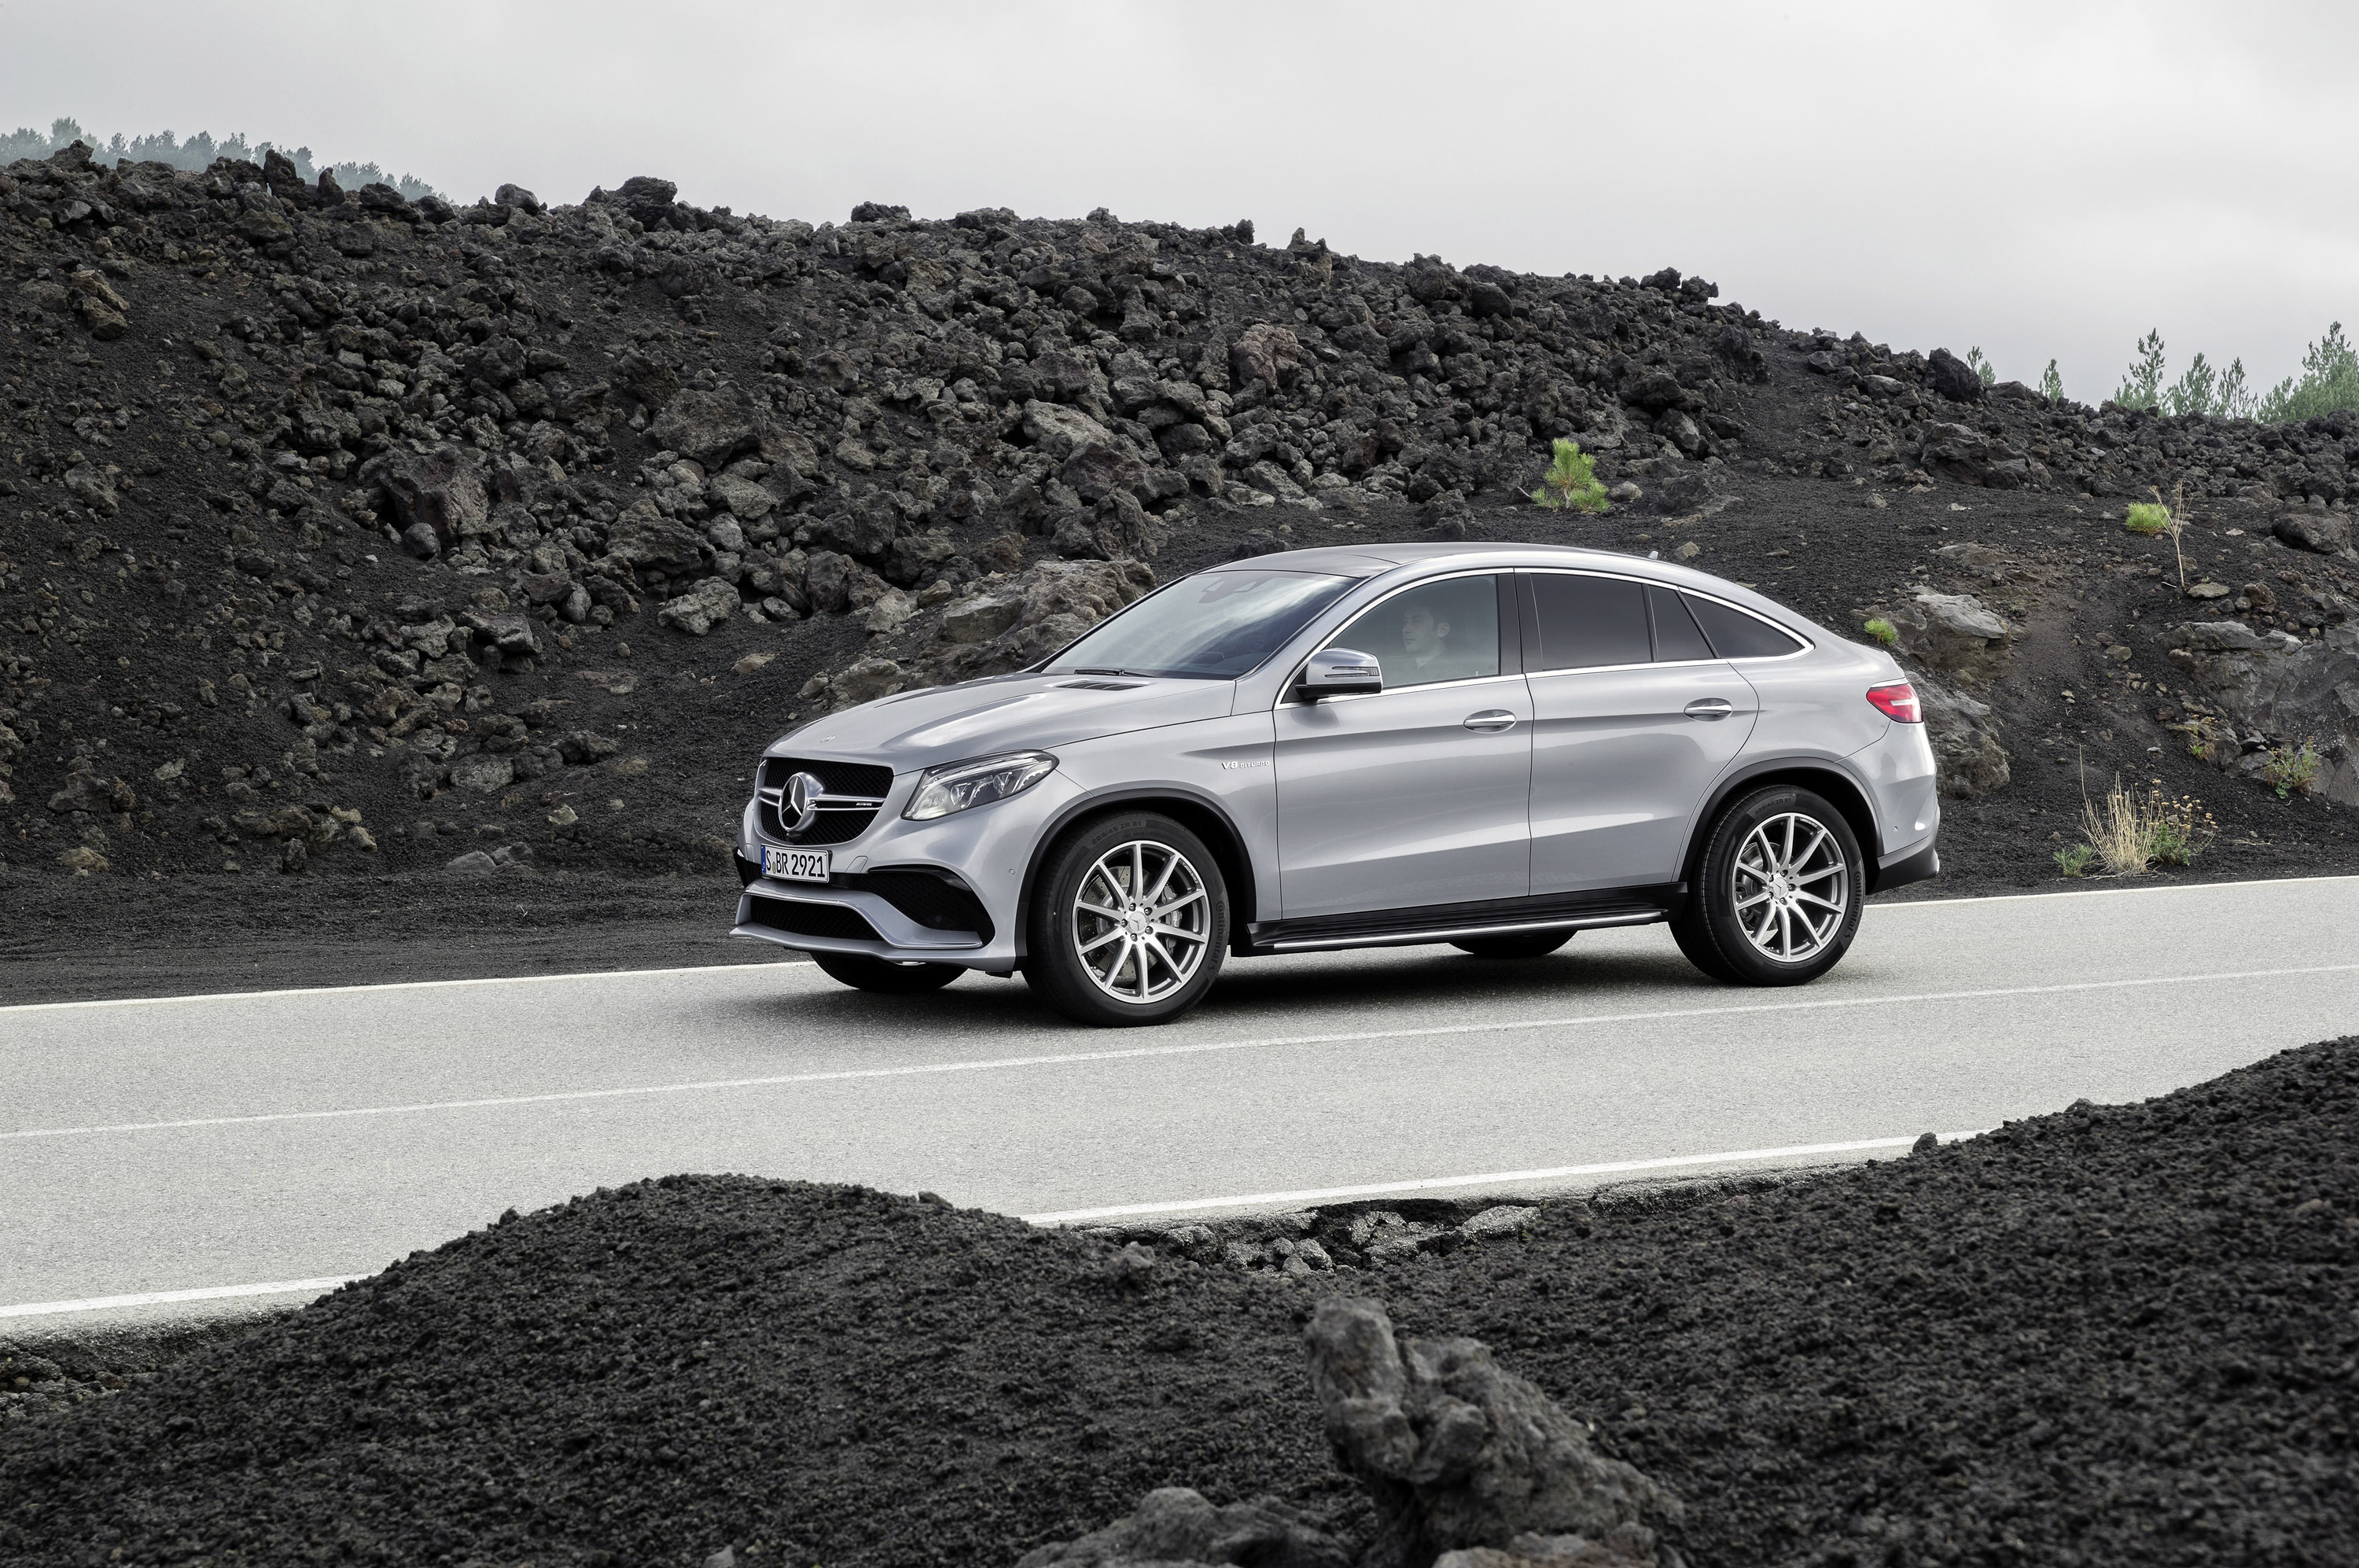 2016 Mercedes-Benz GLE63 AMG Coupe - HD Pictures @ carsinvasion.com